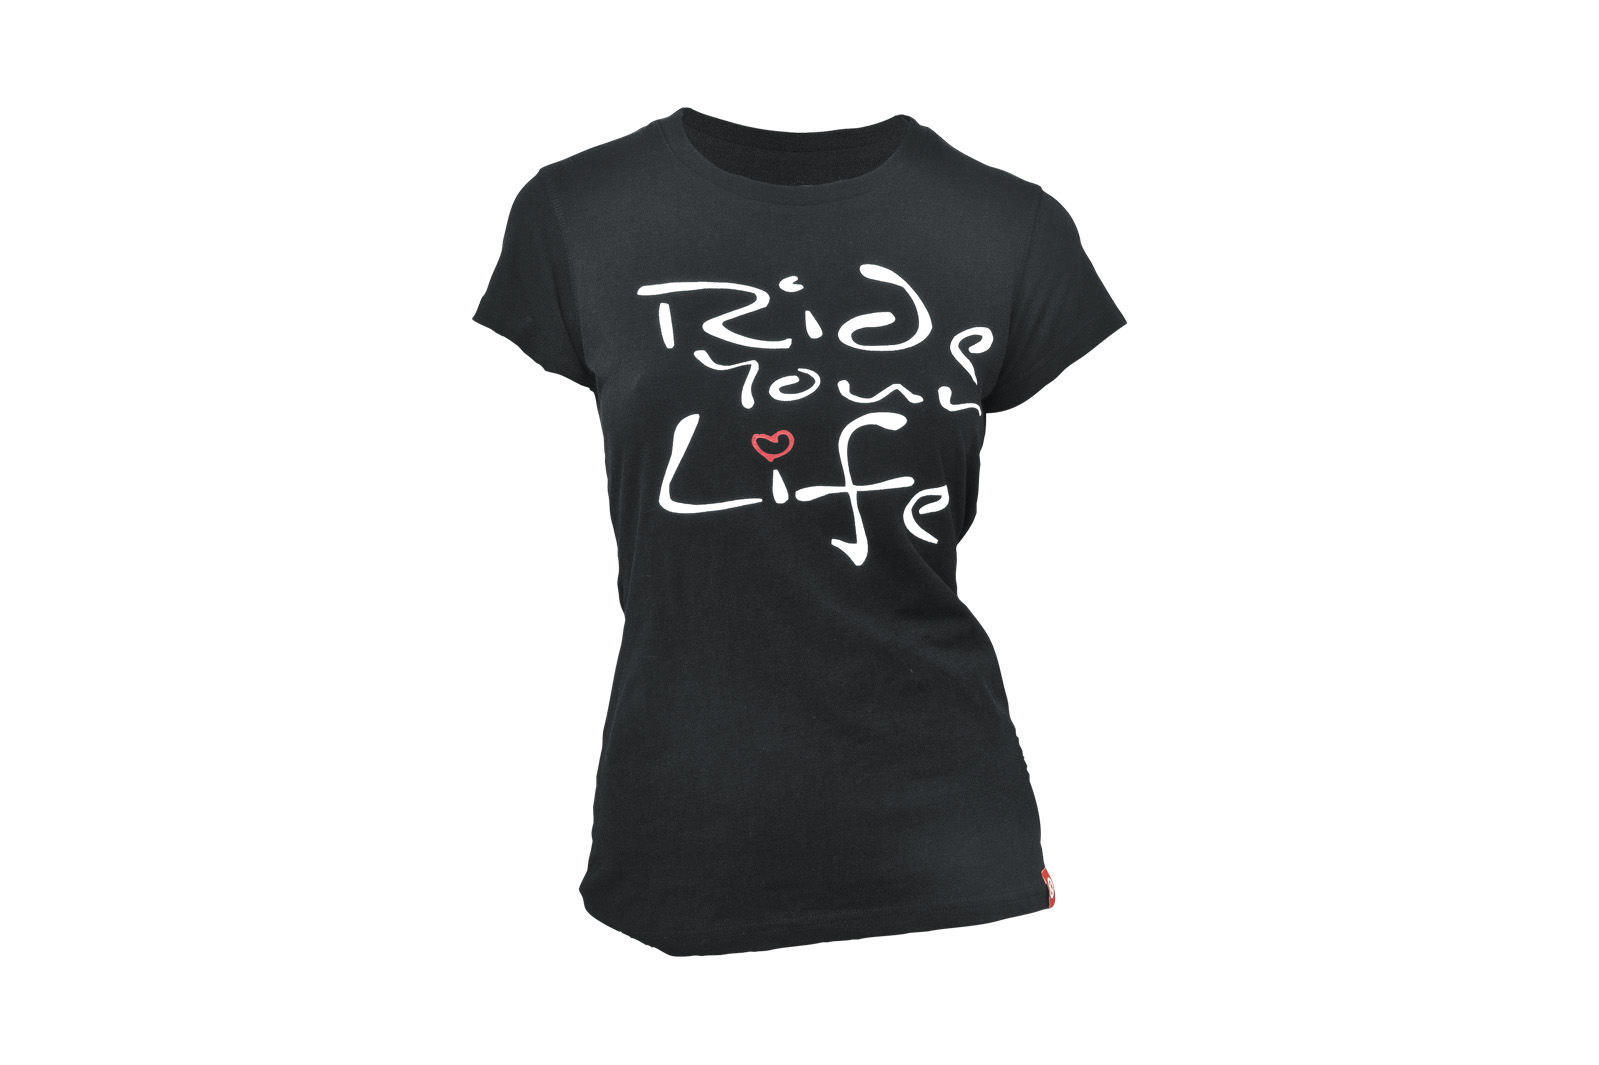 T-Shirt KELLYS WOMEN´S RIDE YOUR LIFE kurzarm Black - XS - Fahrradhaus Haske